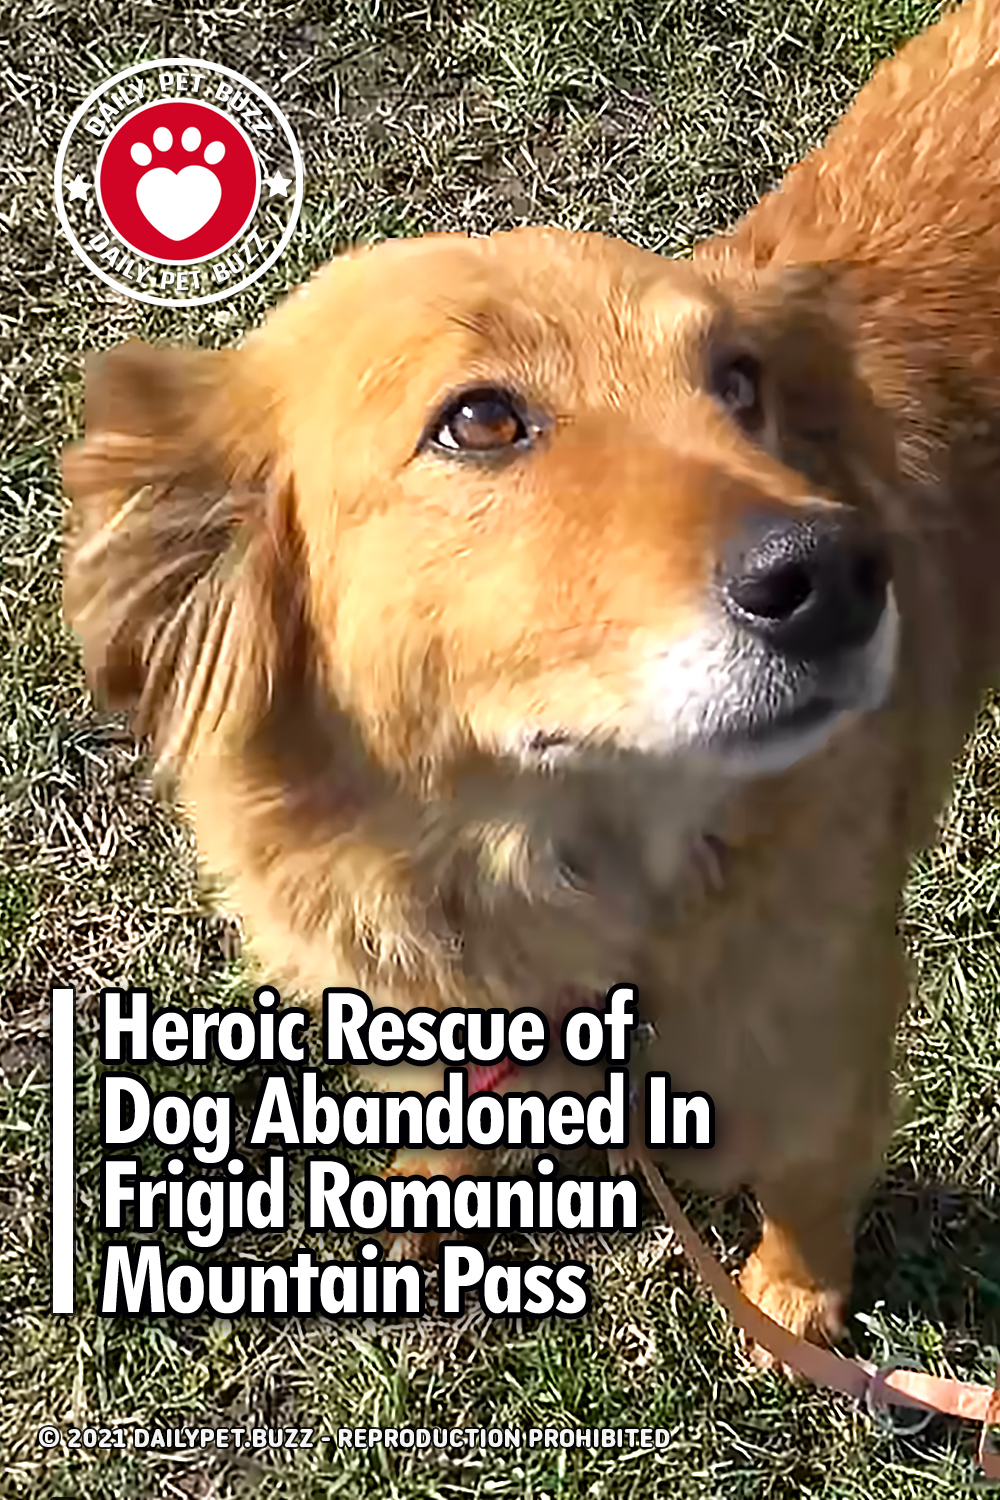 Heroic Rescue of Dog Abandoned In Frigid Romanian Mountain Pass